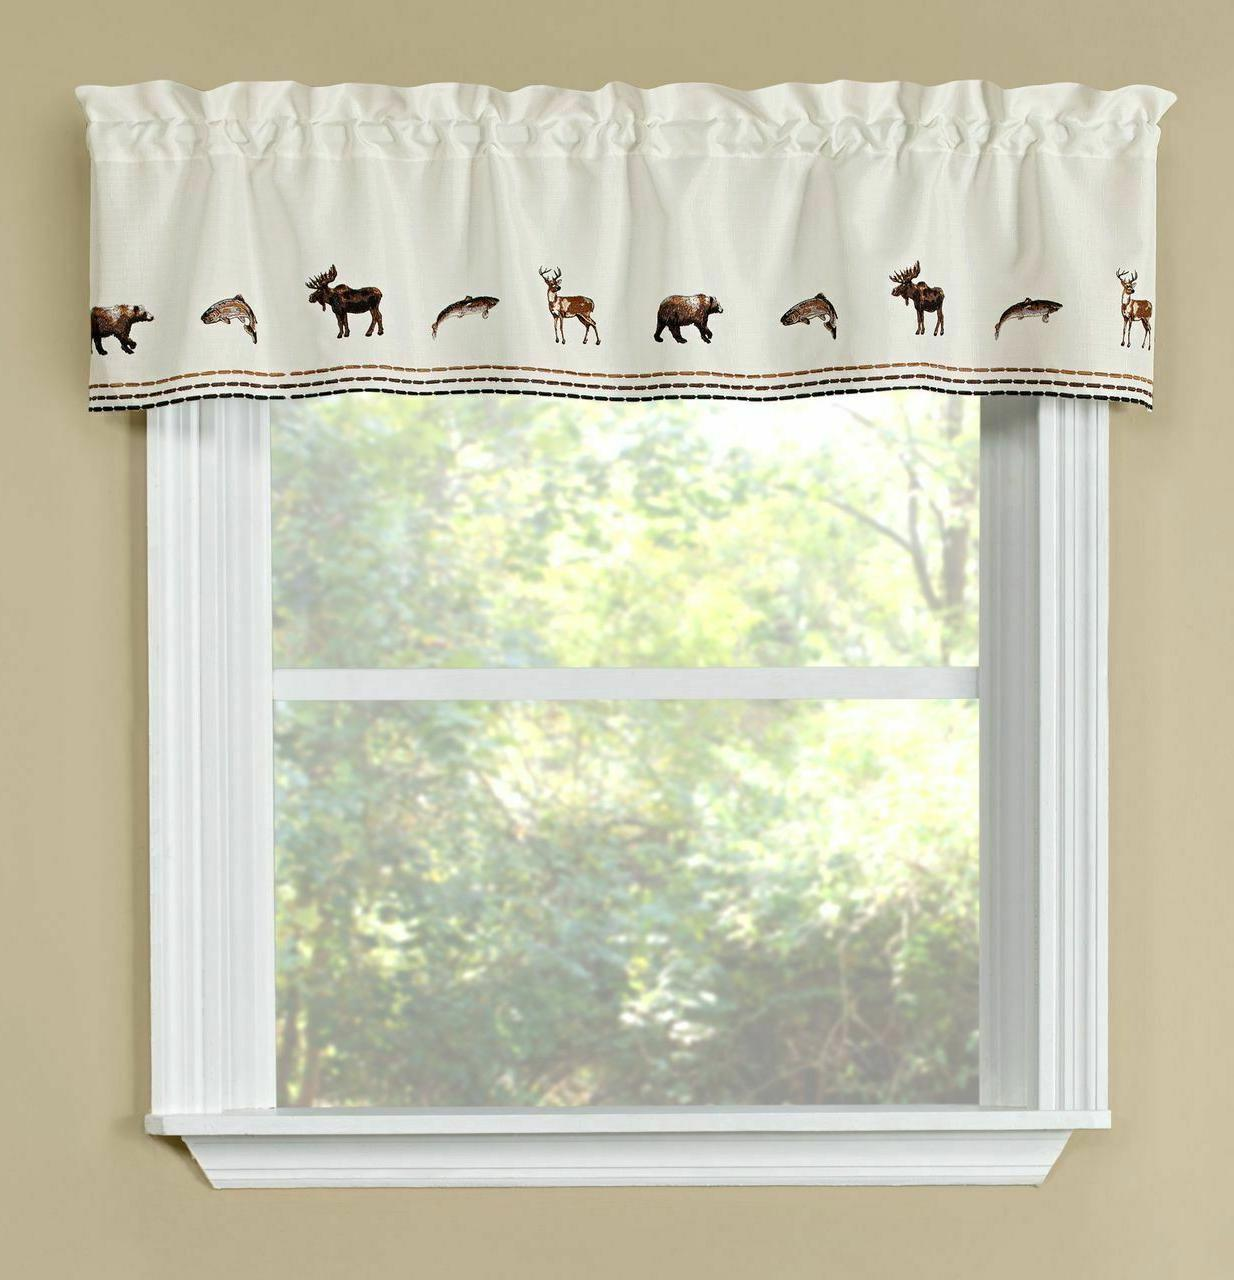 Lodge curtain collection